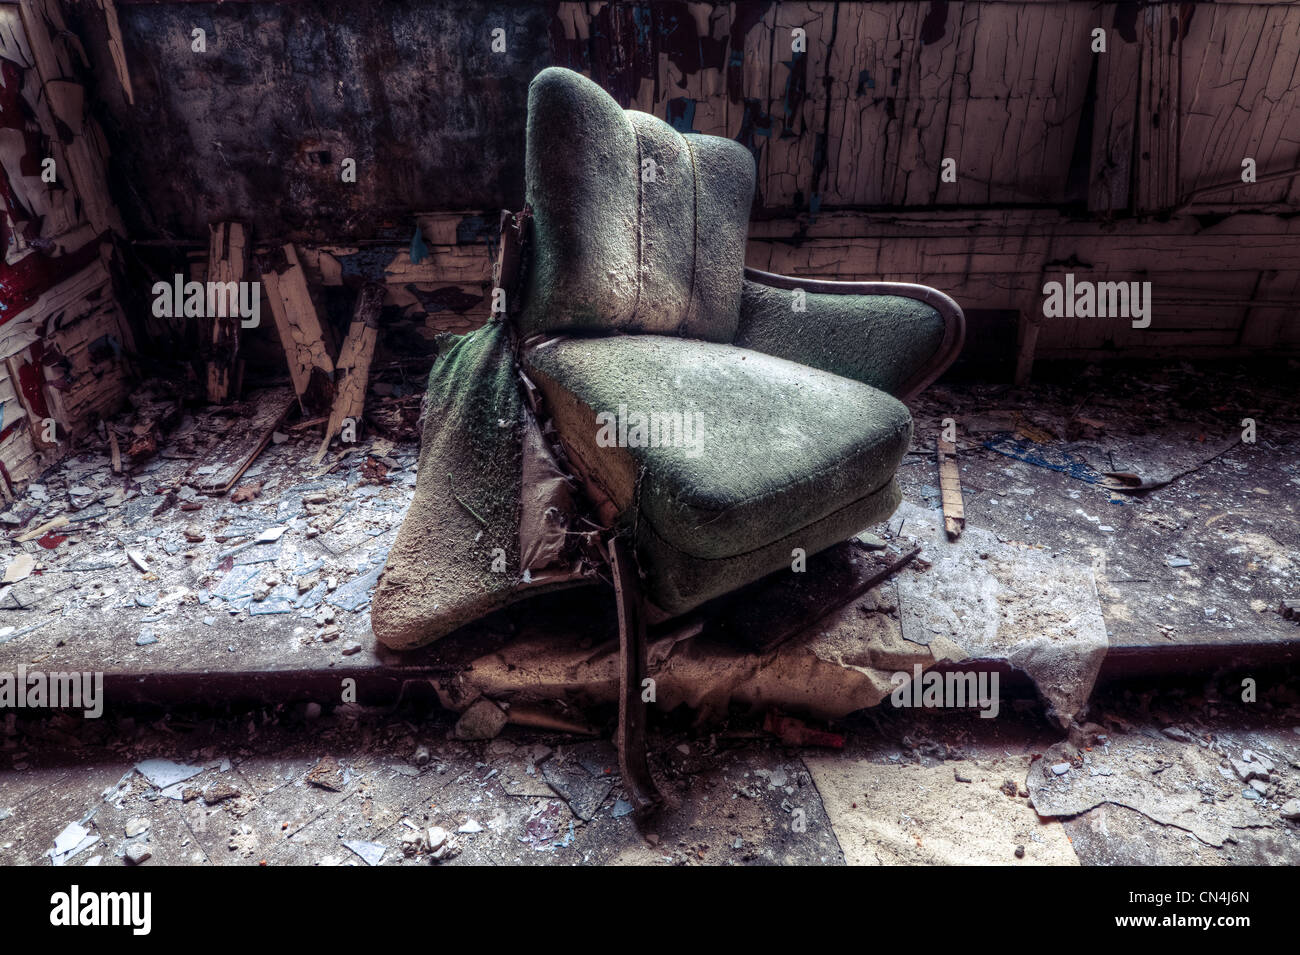 Broken chair in decayed room - Stock Image